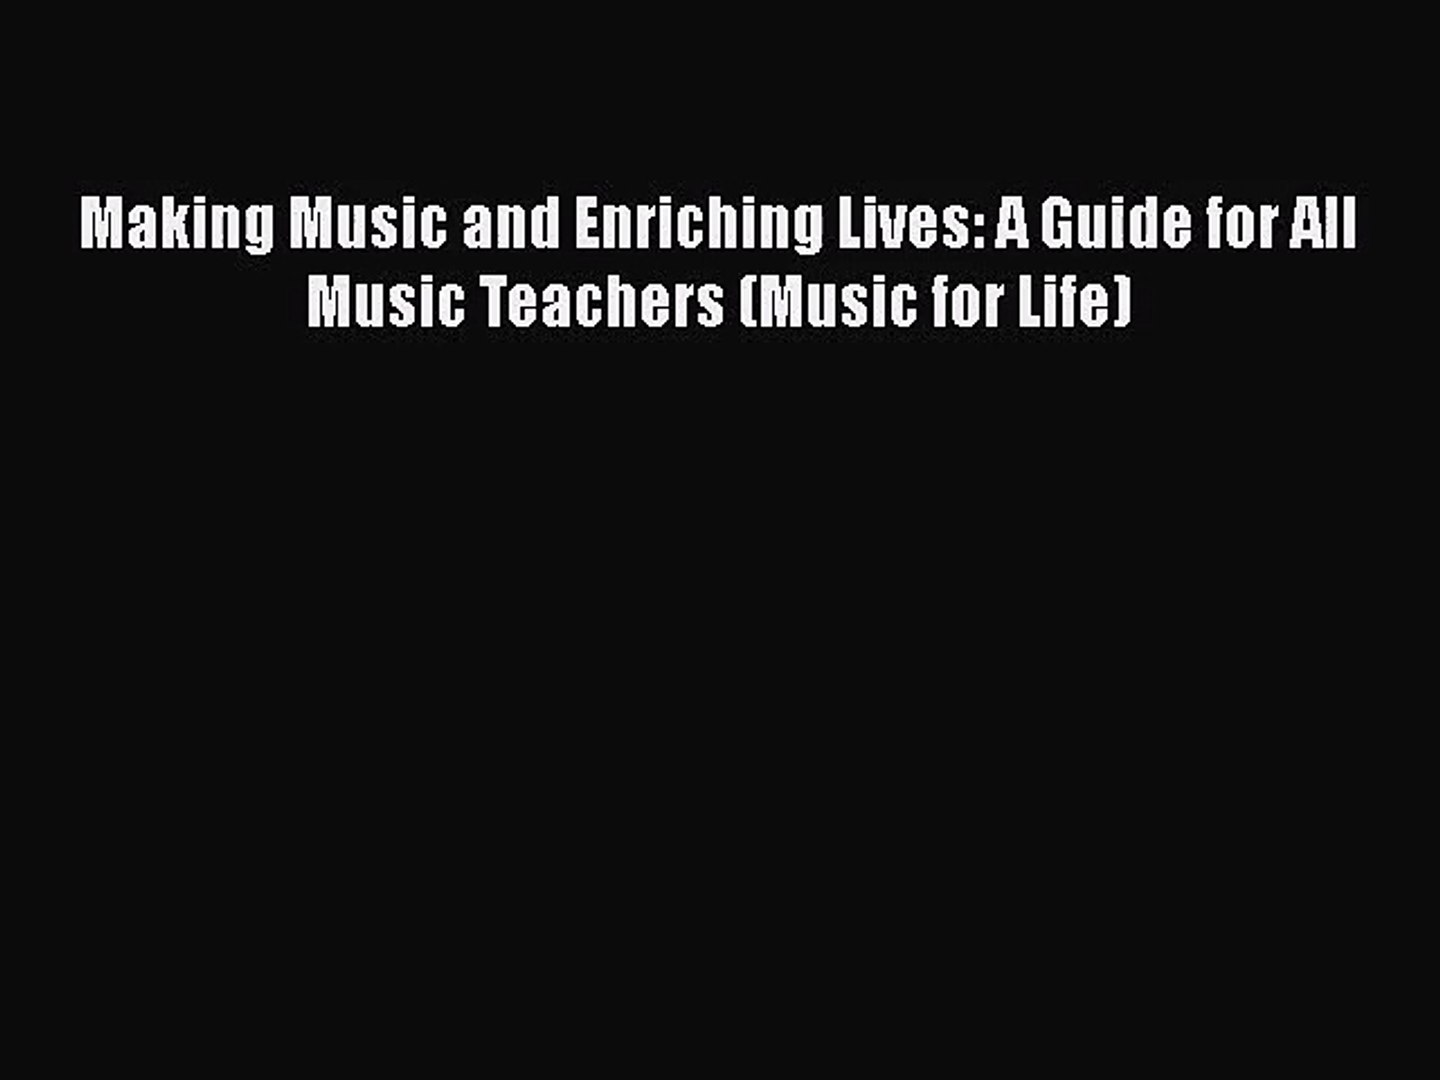 [PDF Download] Making Music and Enriching Lives: A Guide for All Music Teachers (Music for